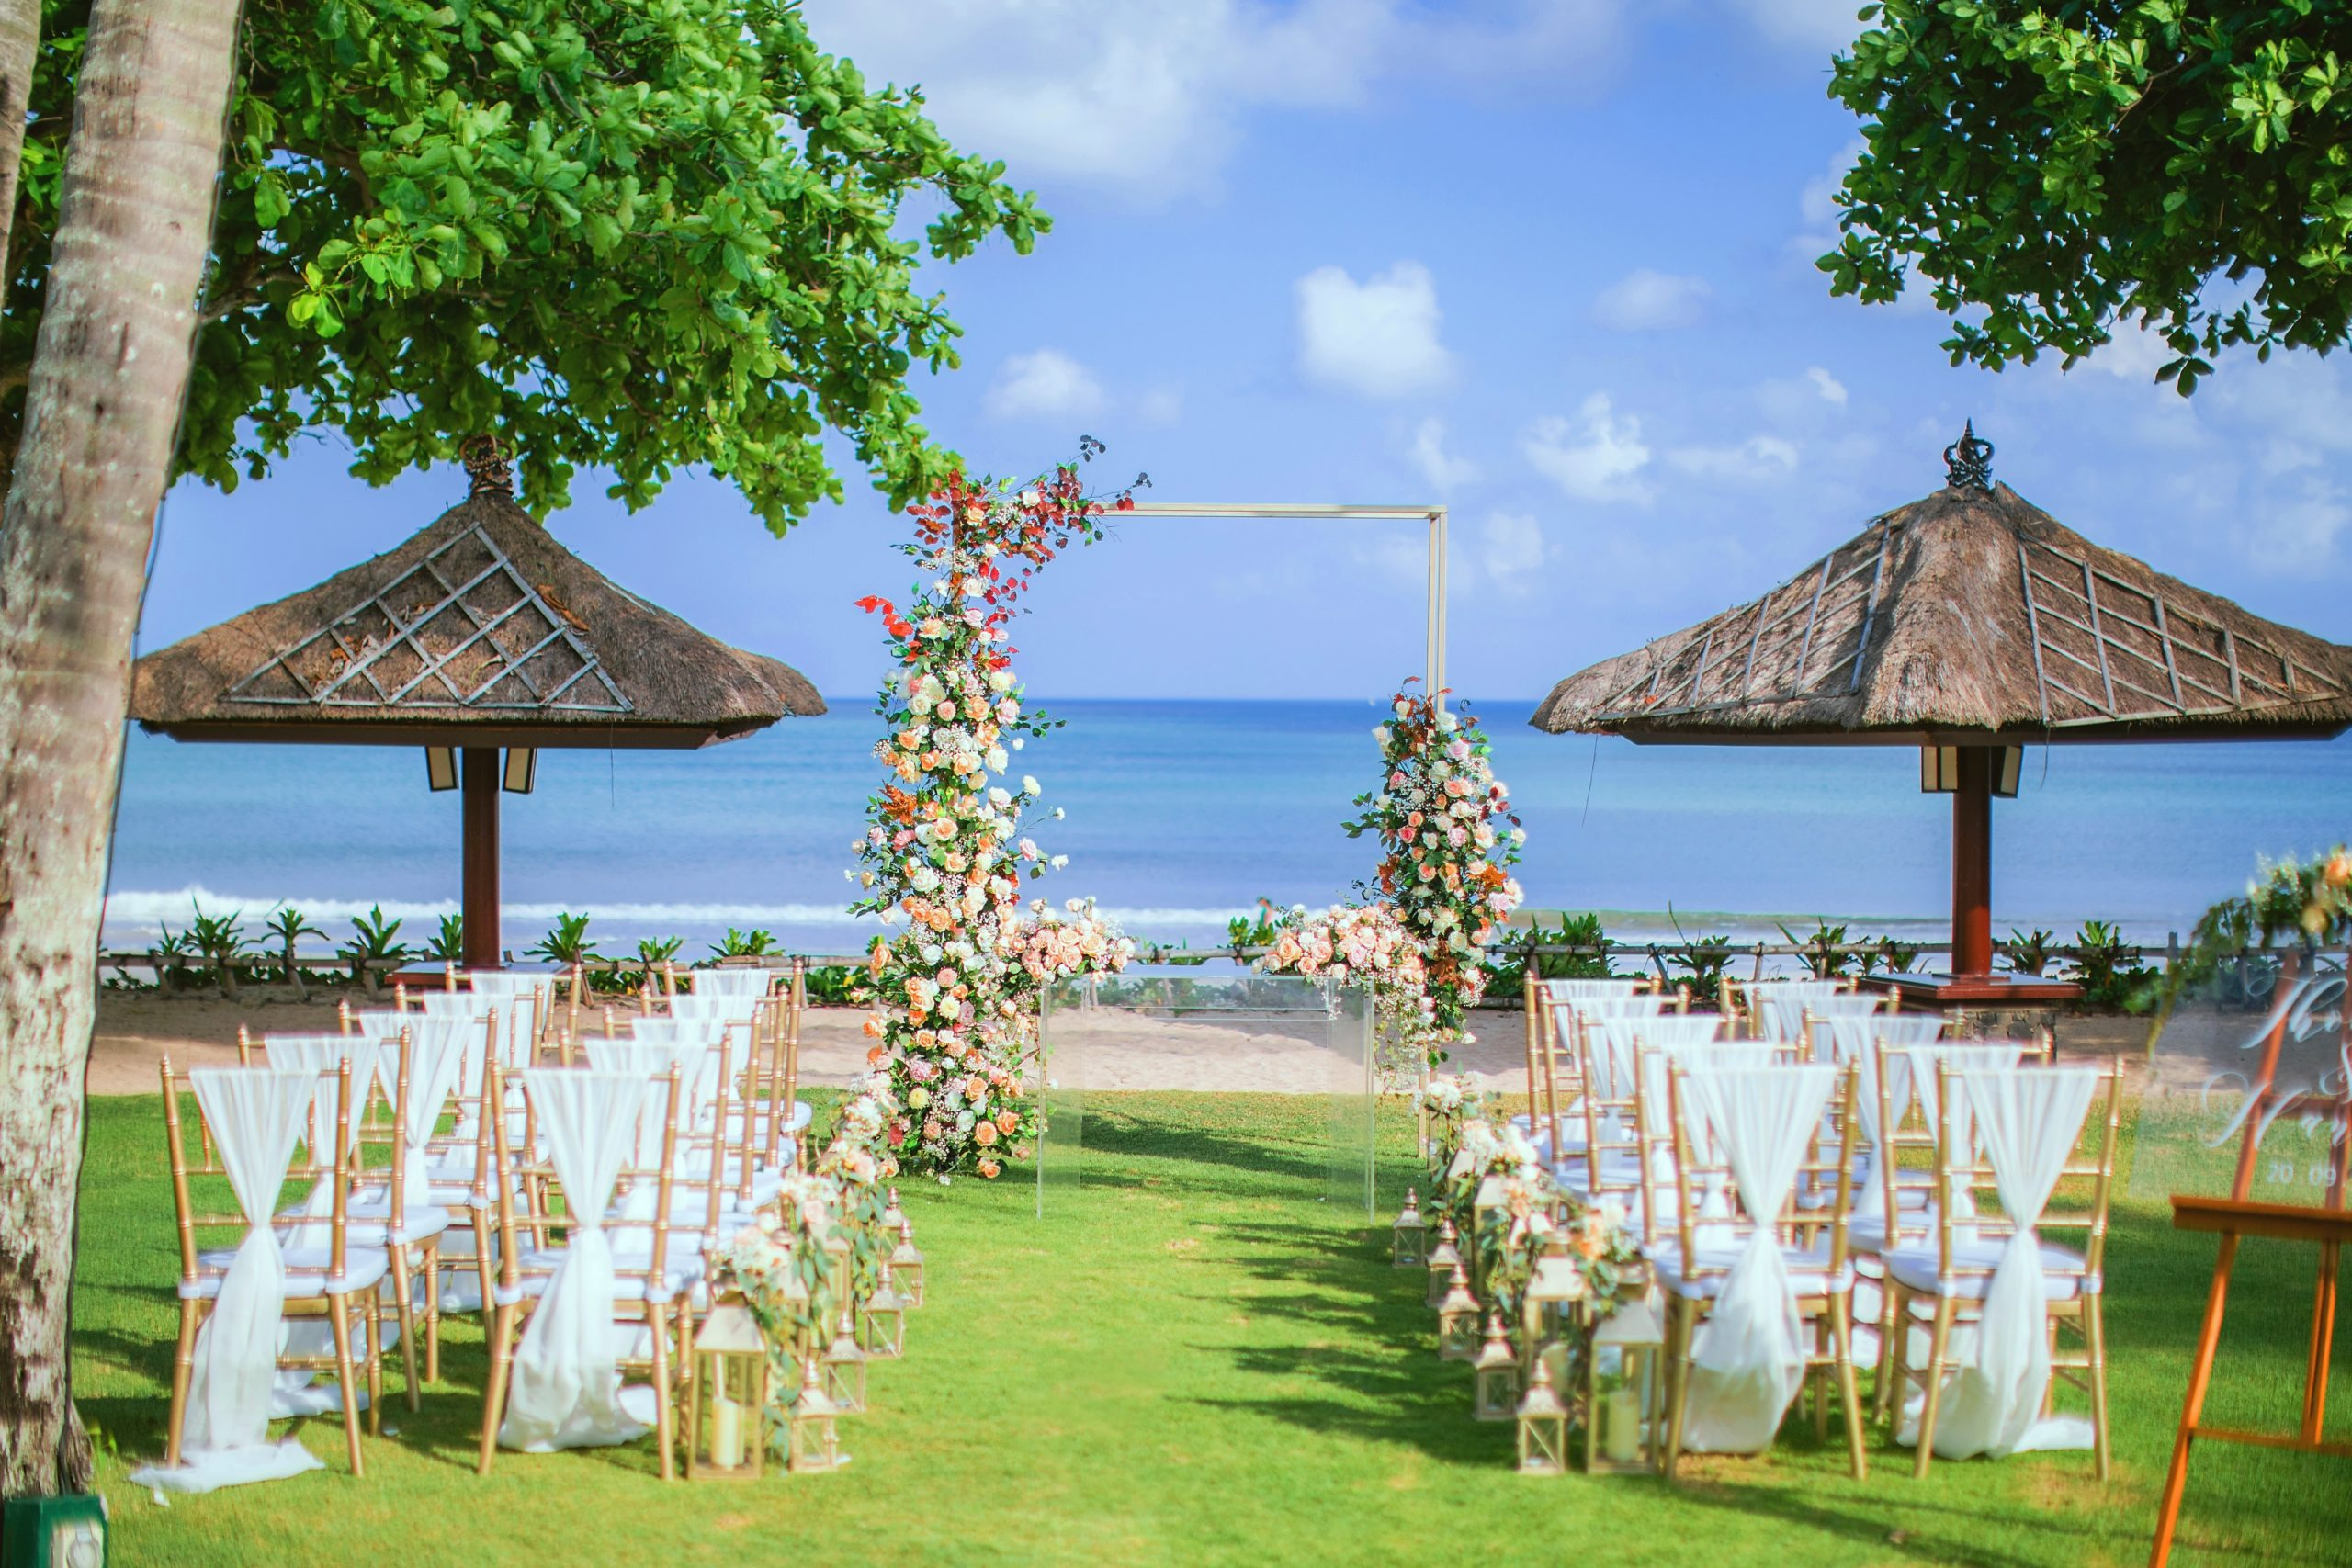 InterContinental Bali Wedding - Bali Moon Wedding